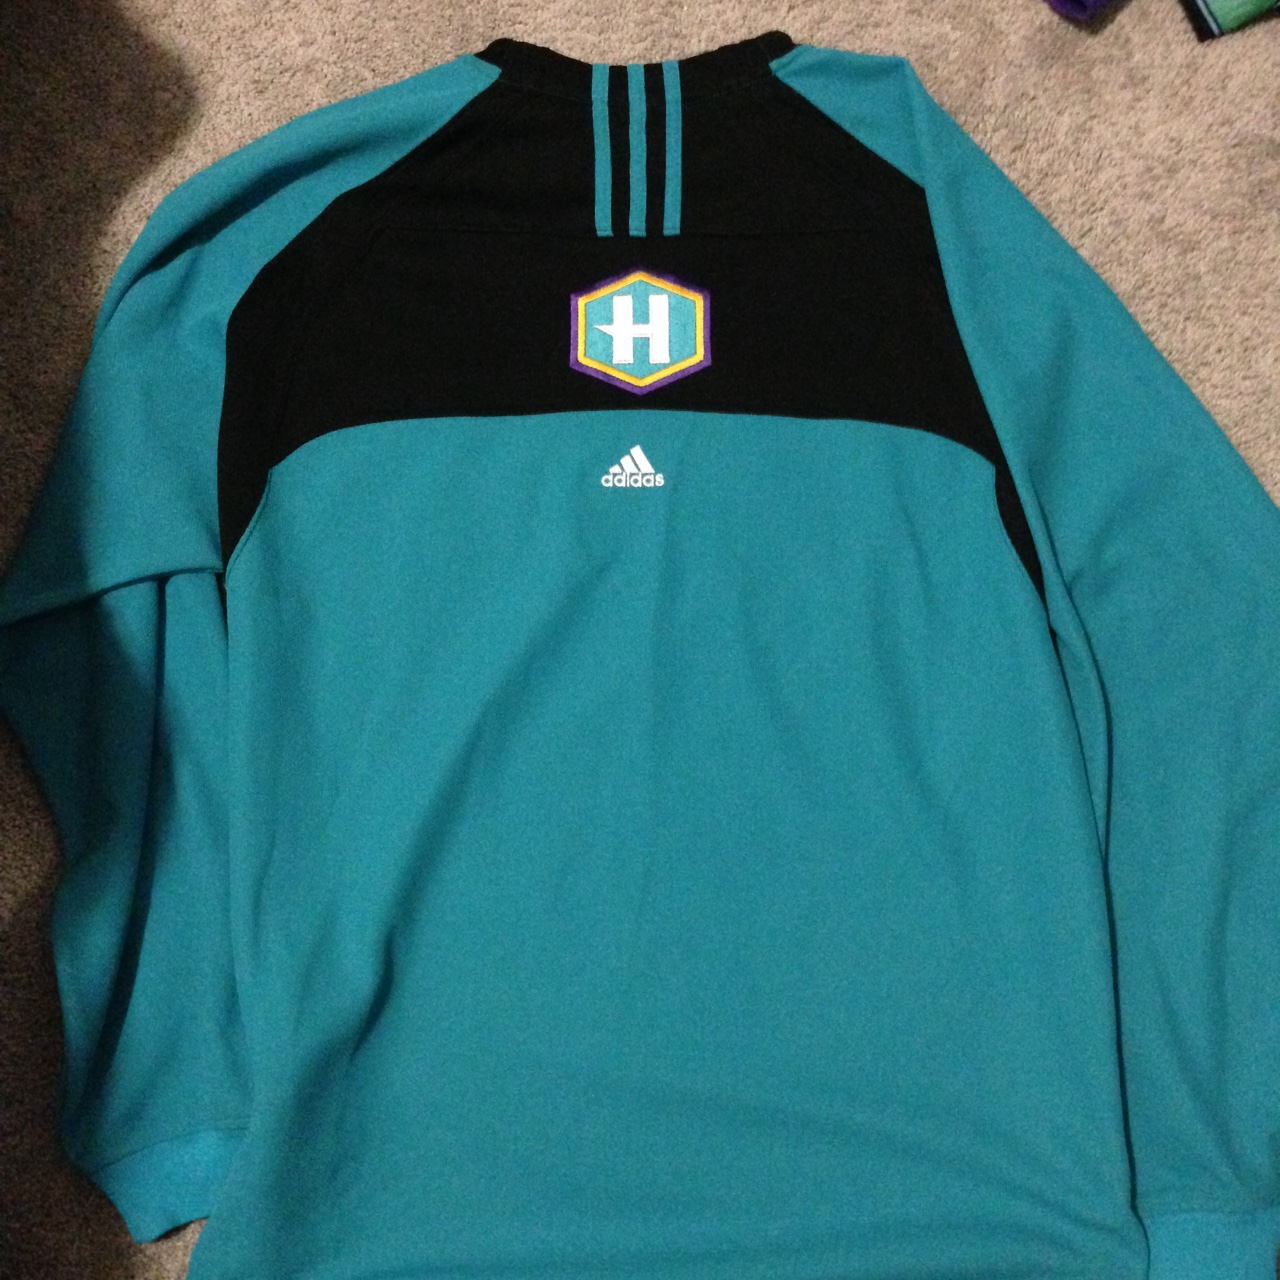 buy popular 489d0 66c43 Adidas Charlotte Hornets hockey jersey size small... - Depop